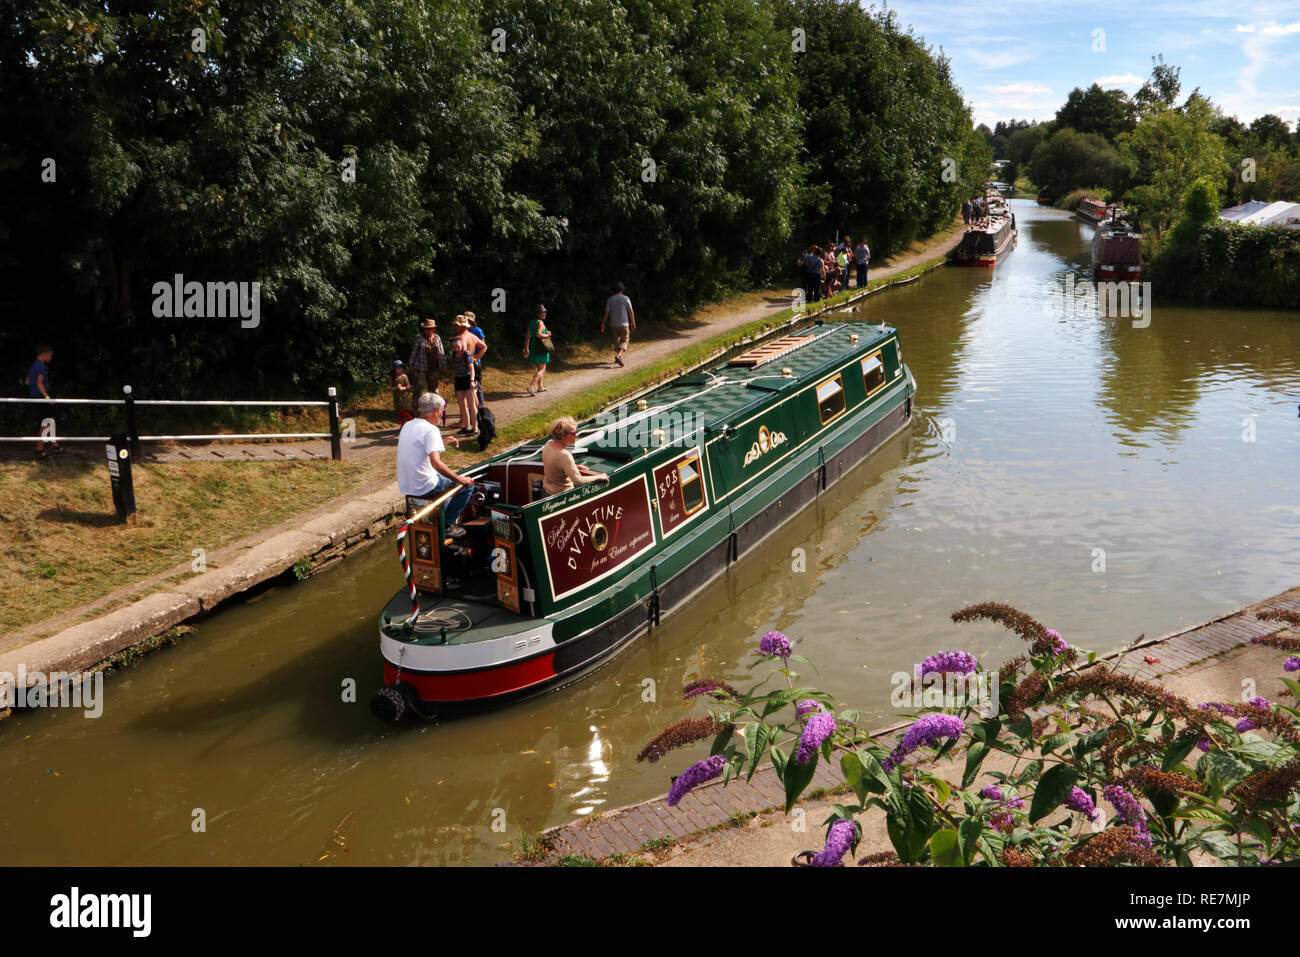 Narrowboats on the canal at Cropredy, Oxfordshire - Stock Image